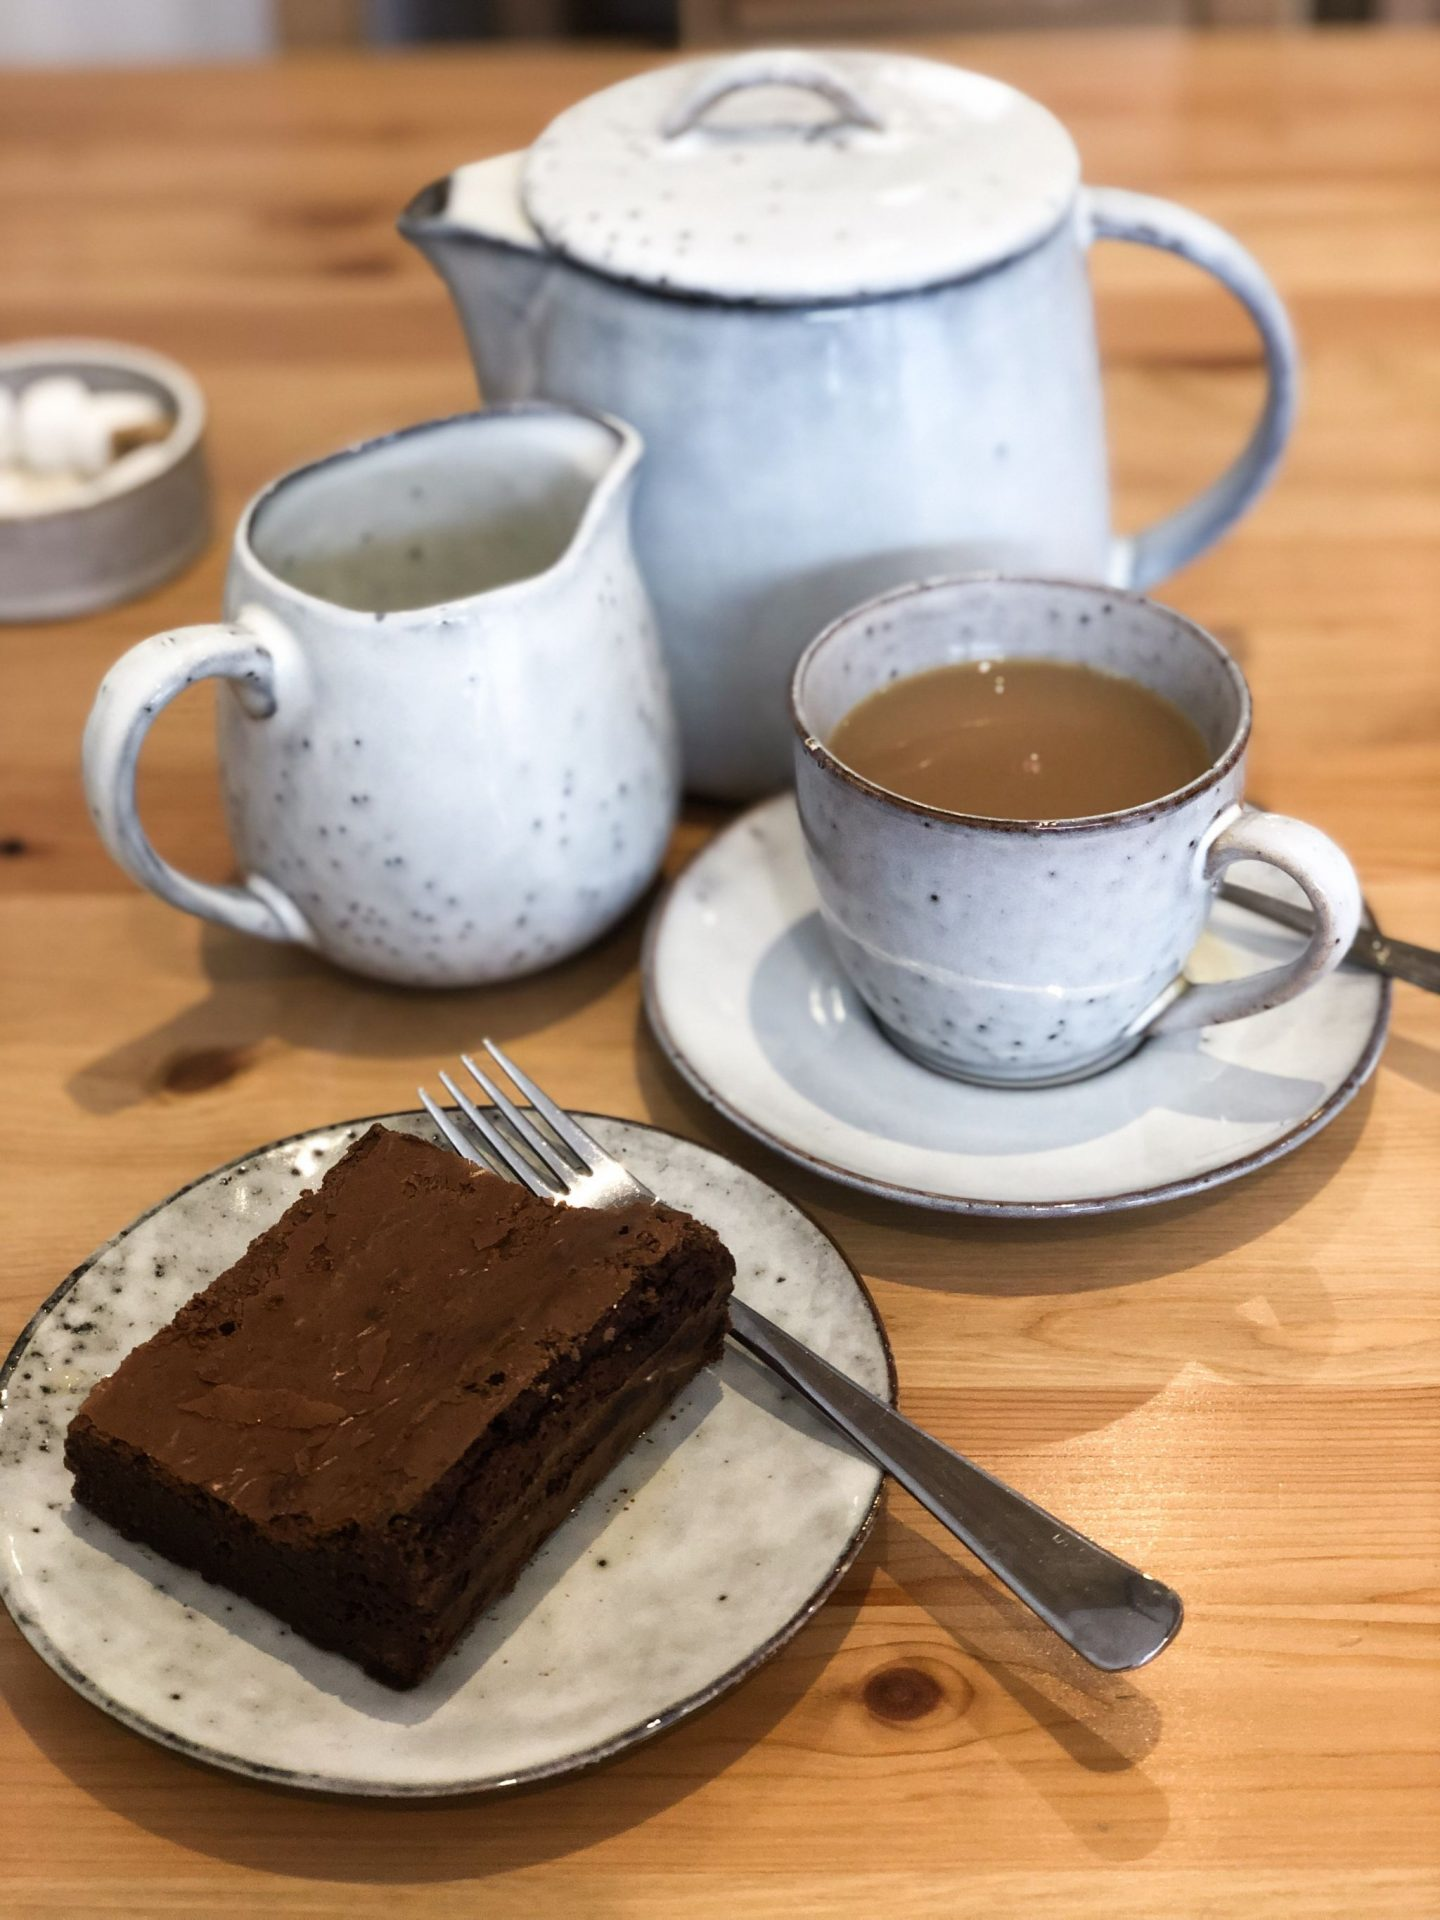 A rich, gooey chocolate brownie sat on a mottled grey plate with a fork, ready to be eaten. In the background is a cup of tea, a teapot and a jug of milk. This is at Workshop, one of the best cafes in Leeds.